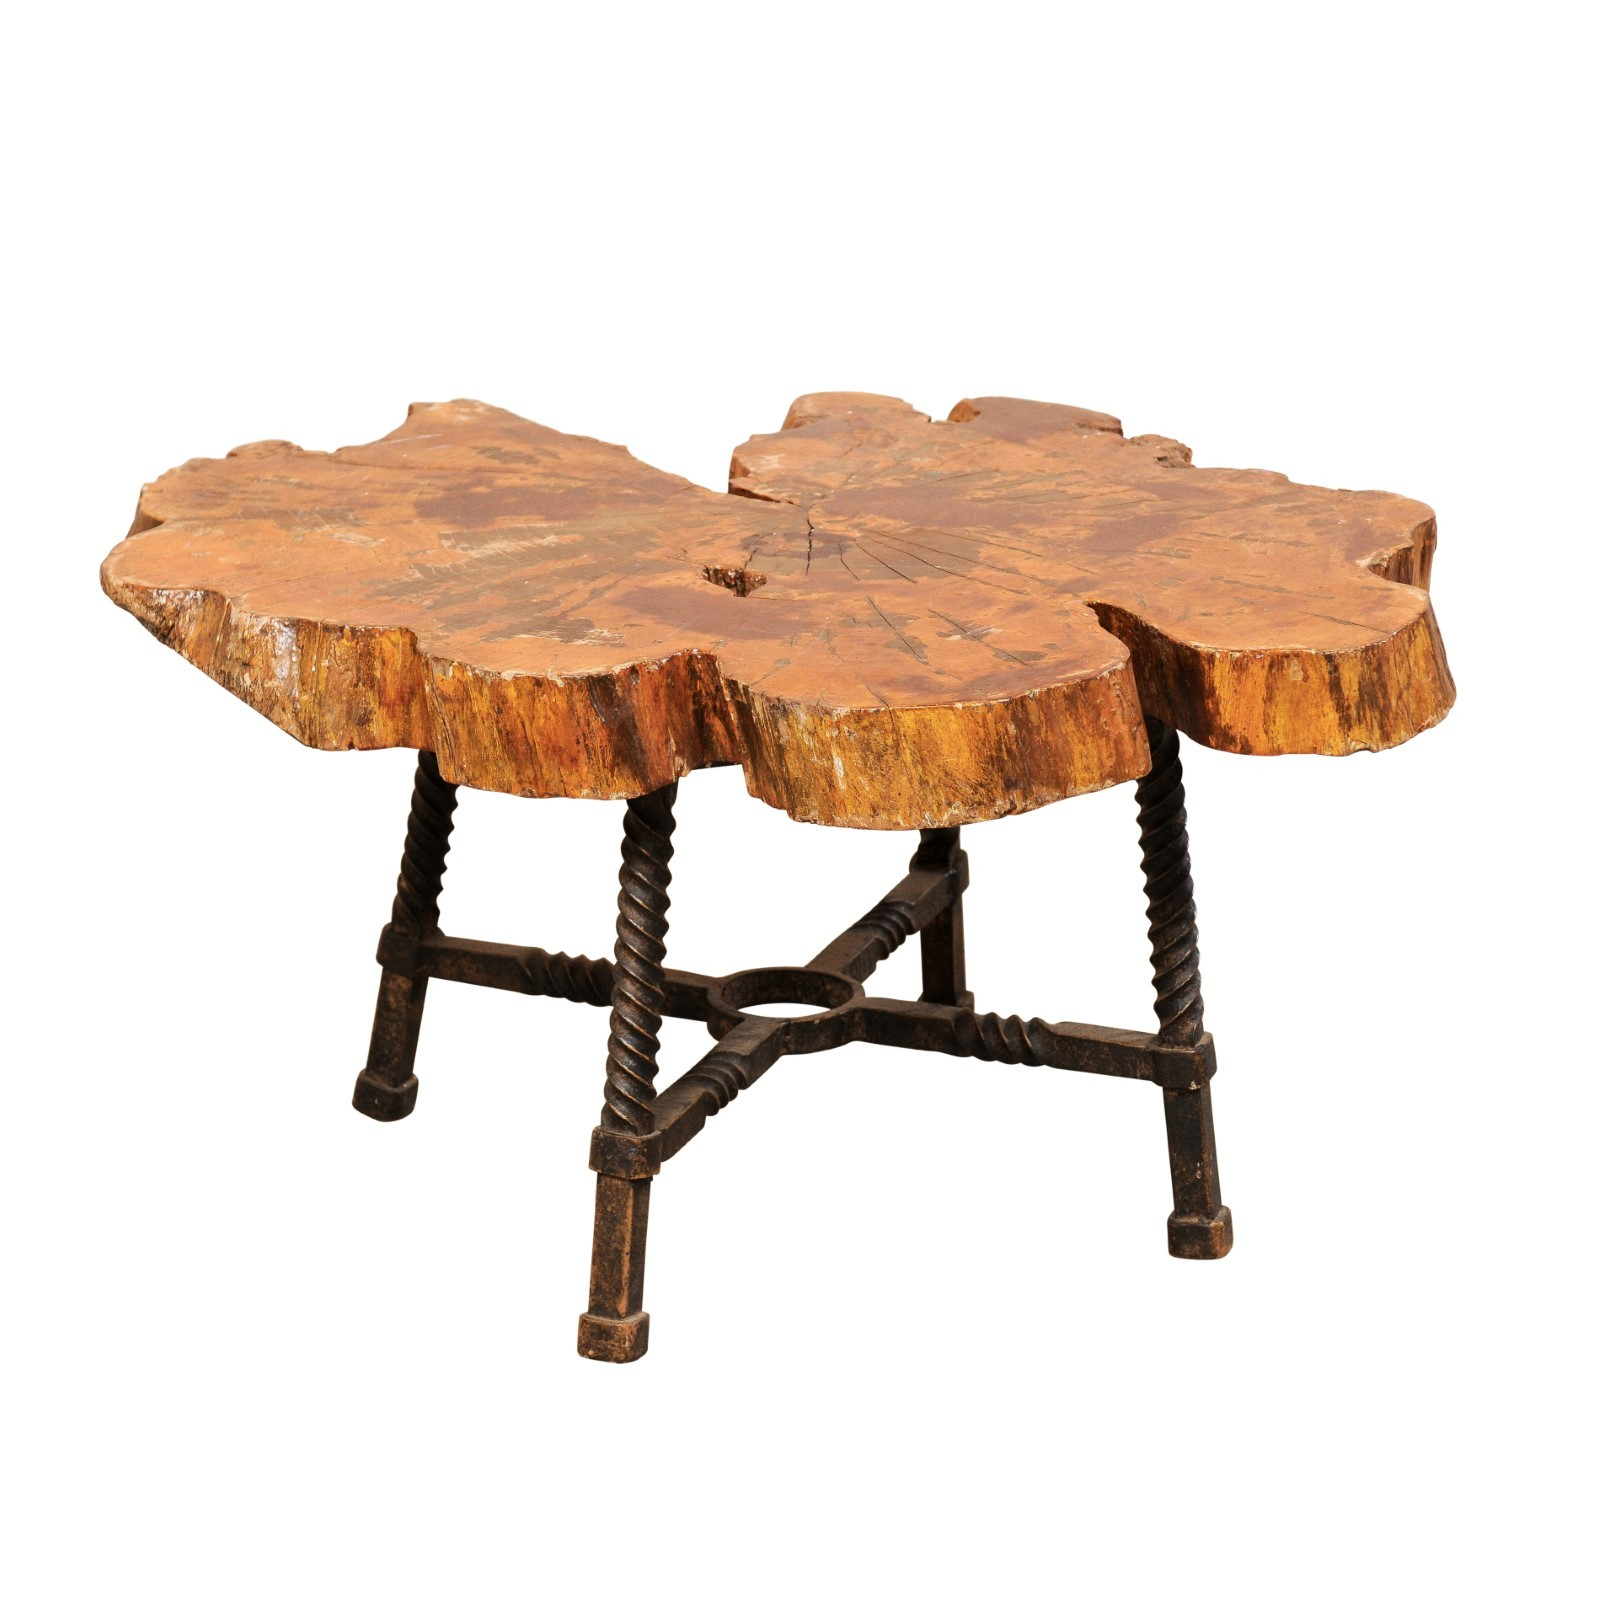 Live-Edge Wood & Forged Iron Coffee Table